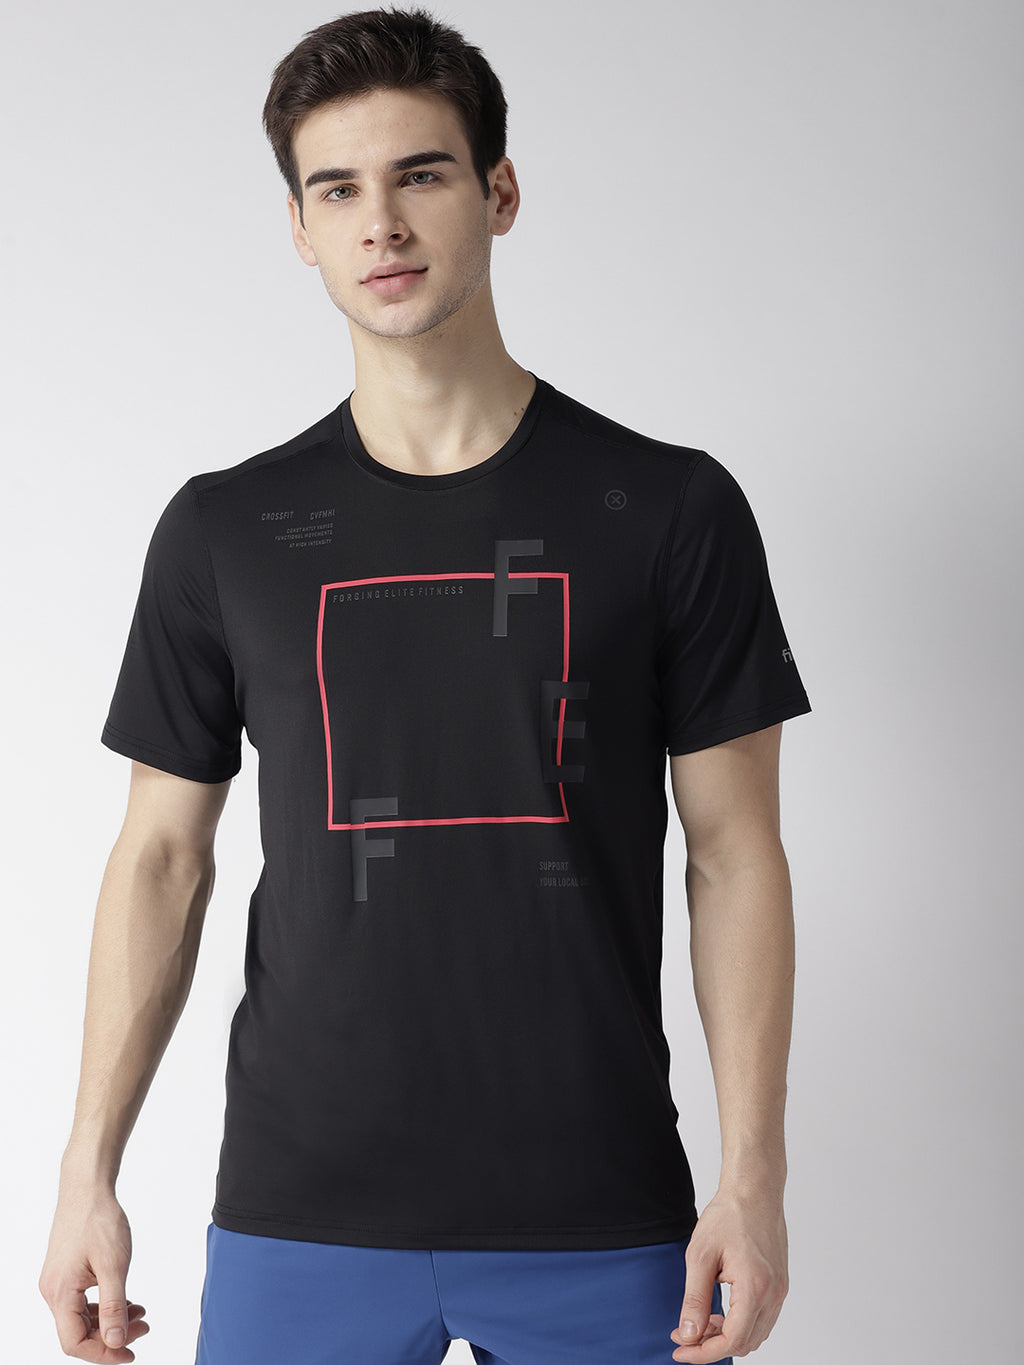 Mens Graphic Print T-shirt